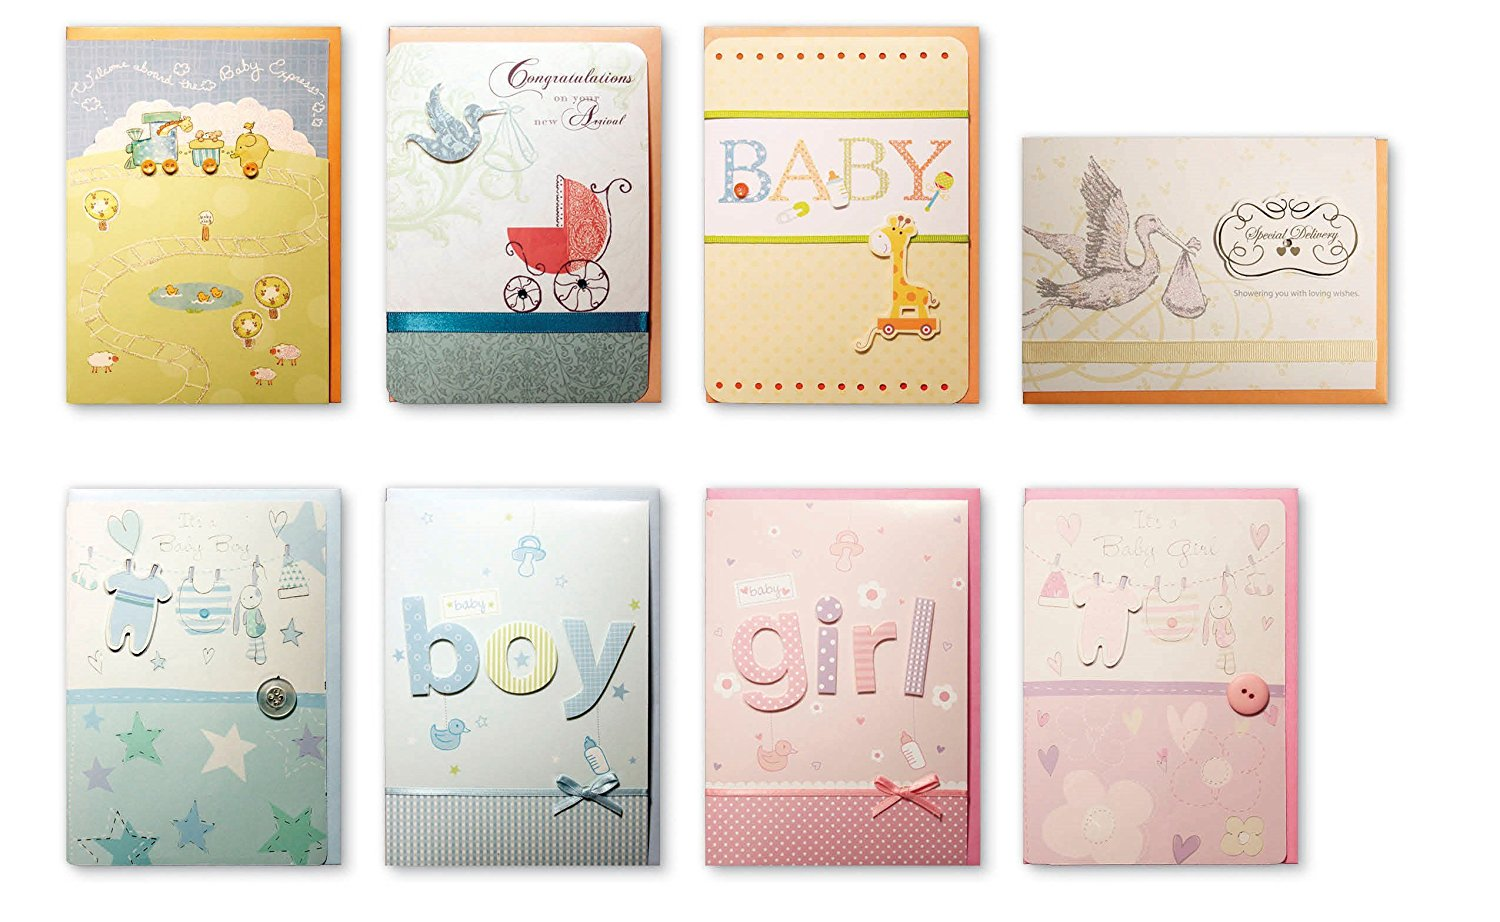 assorted congratulations wishes for baby cards box set 8 pack handmade embellished assortment greeting cards for